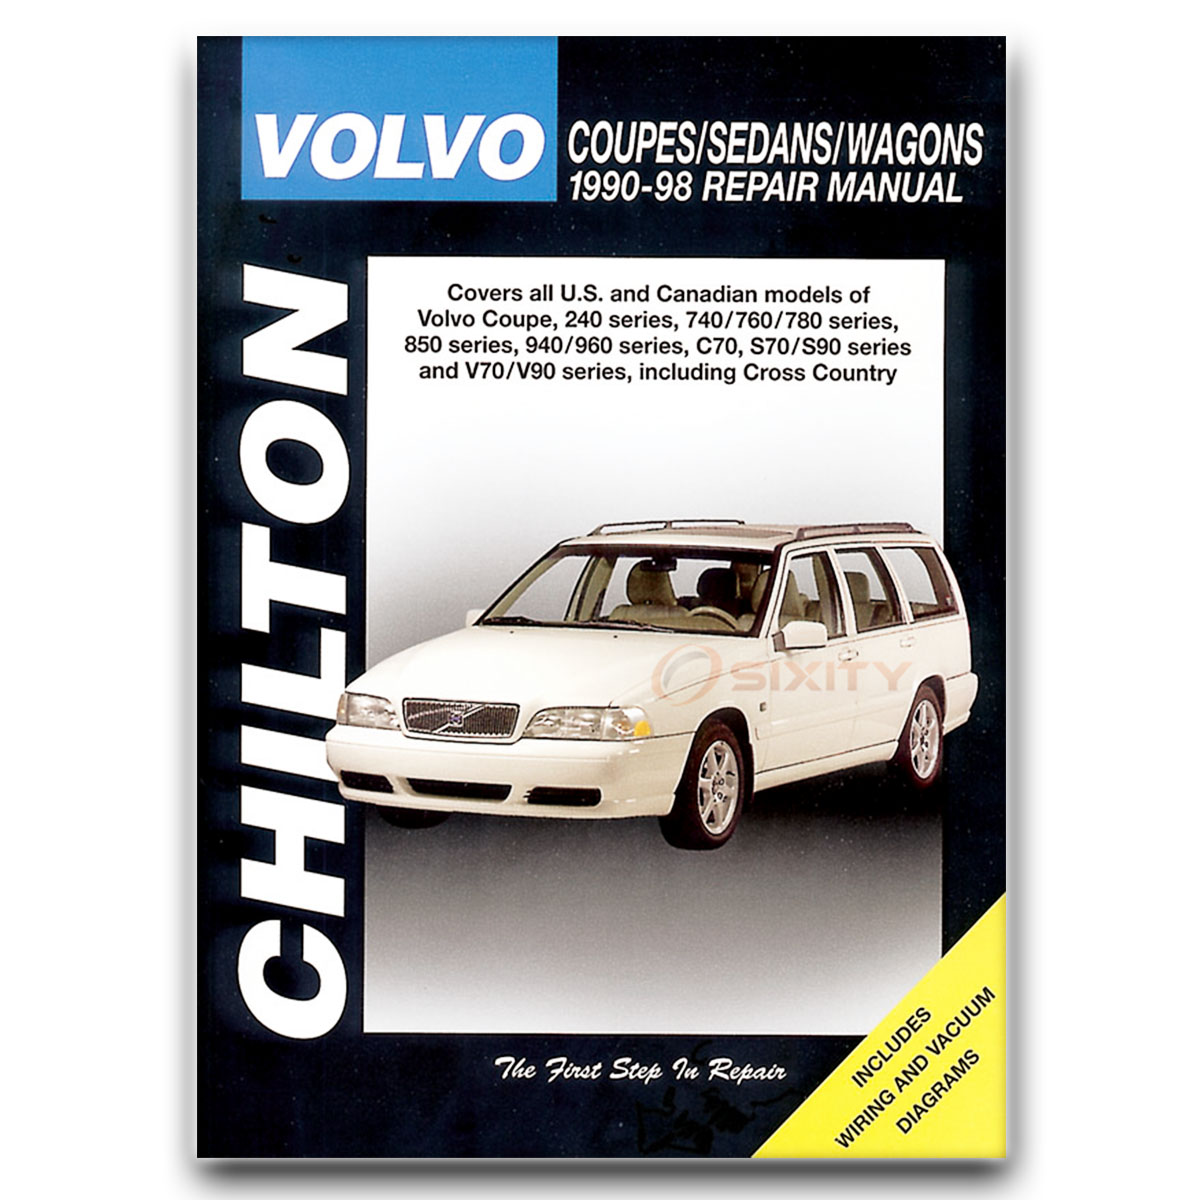 Chilton Repair Manual for Volvo 960 Base Shop Service Garage Book jp